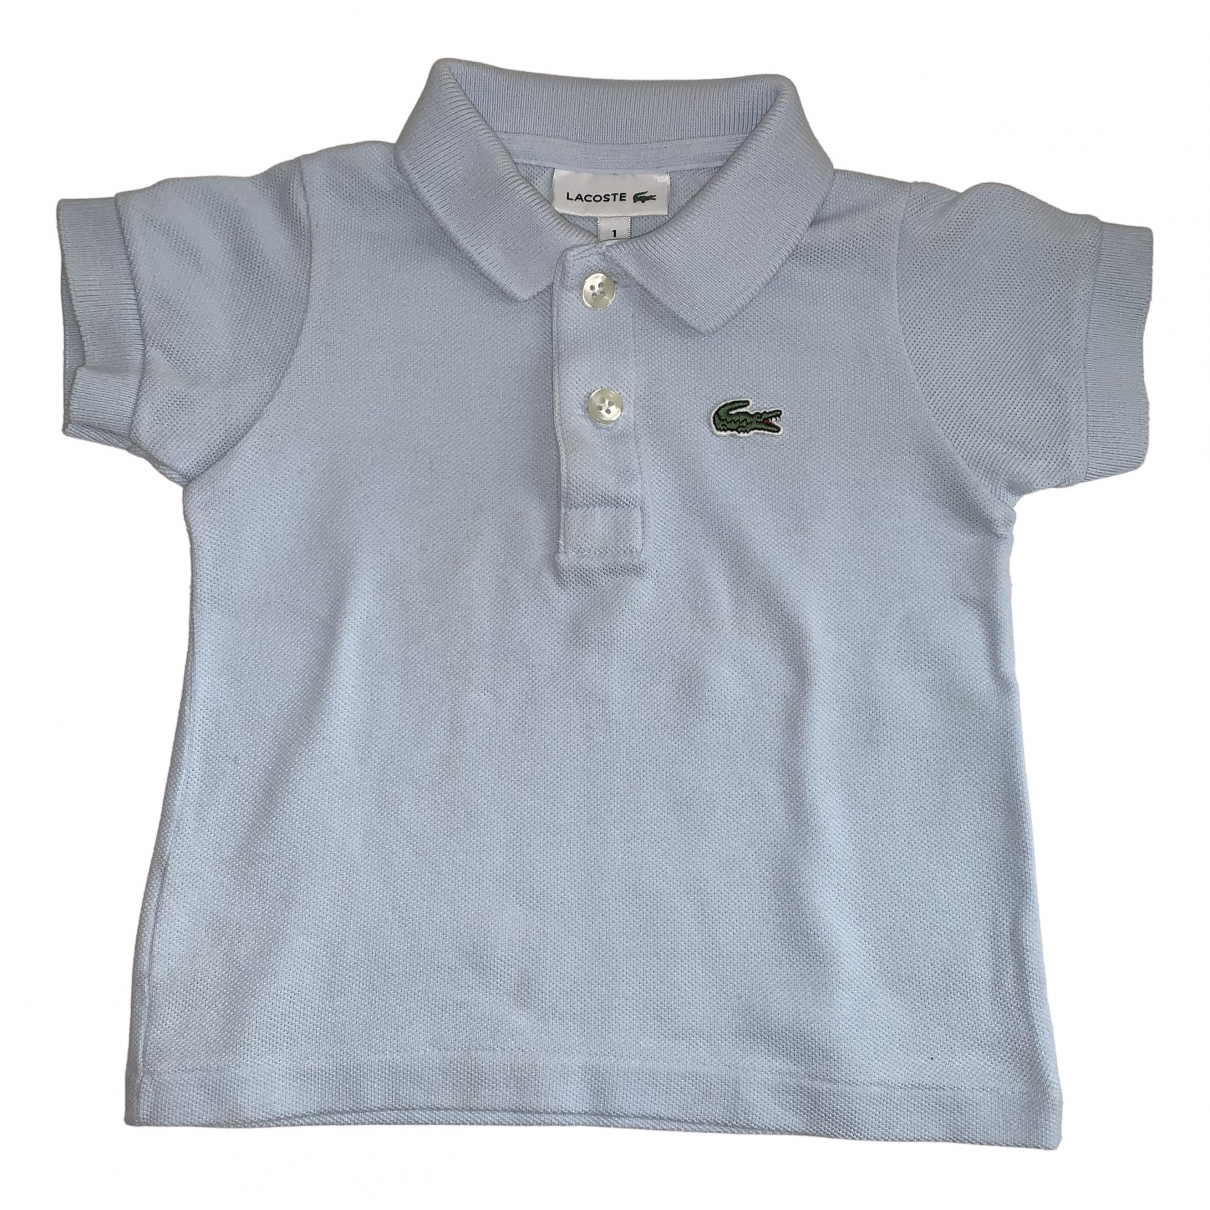 Lacoste N Blue Cotton  top for Kids 12 months - up to 74cm FR